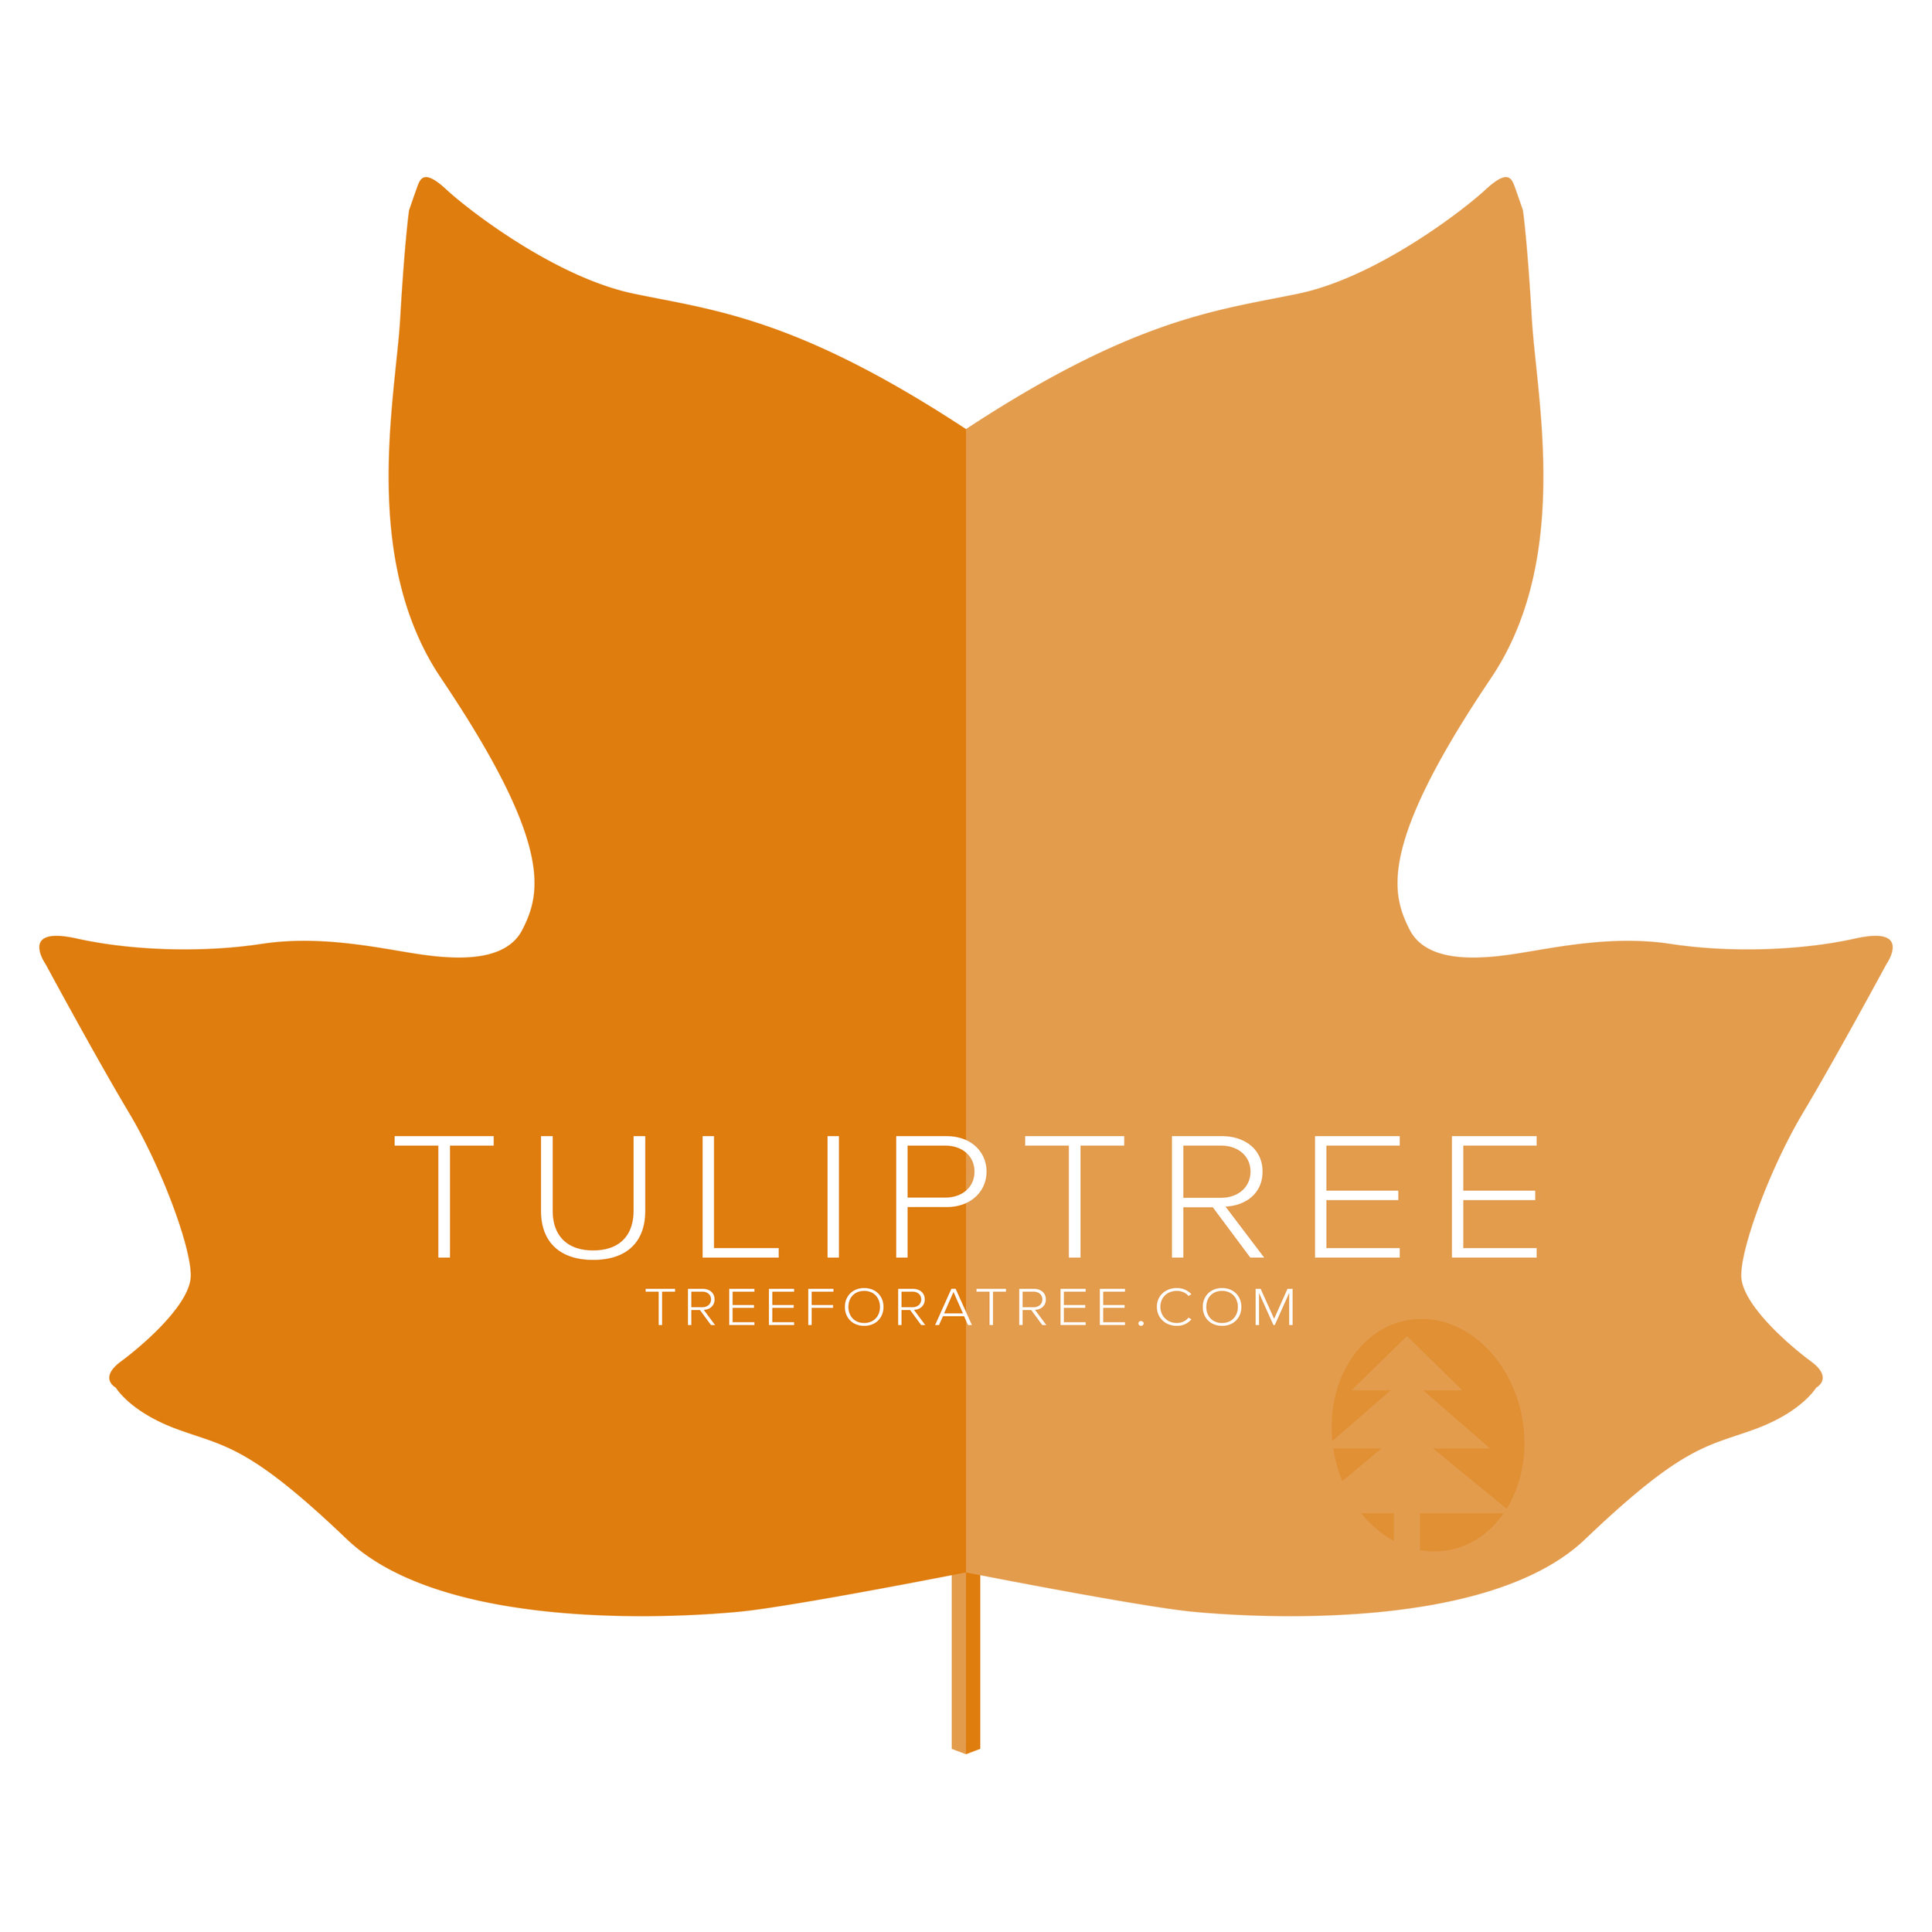 Tuliptree - Latin Name: Liriodendron tulipiferaGrowth Rate: Very FastMature Height: ≈80 ftMature Spread: ≈40 ftState Champ: Summit Co. (163' high x 91' spread)